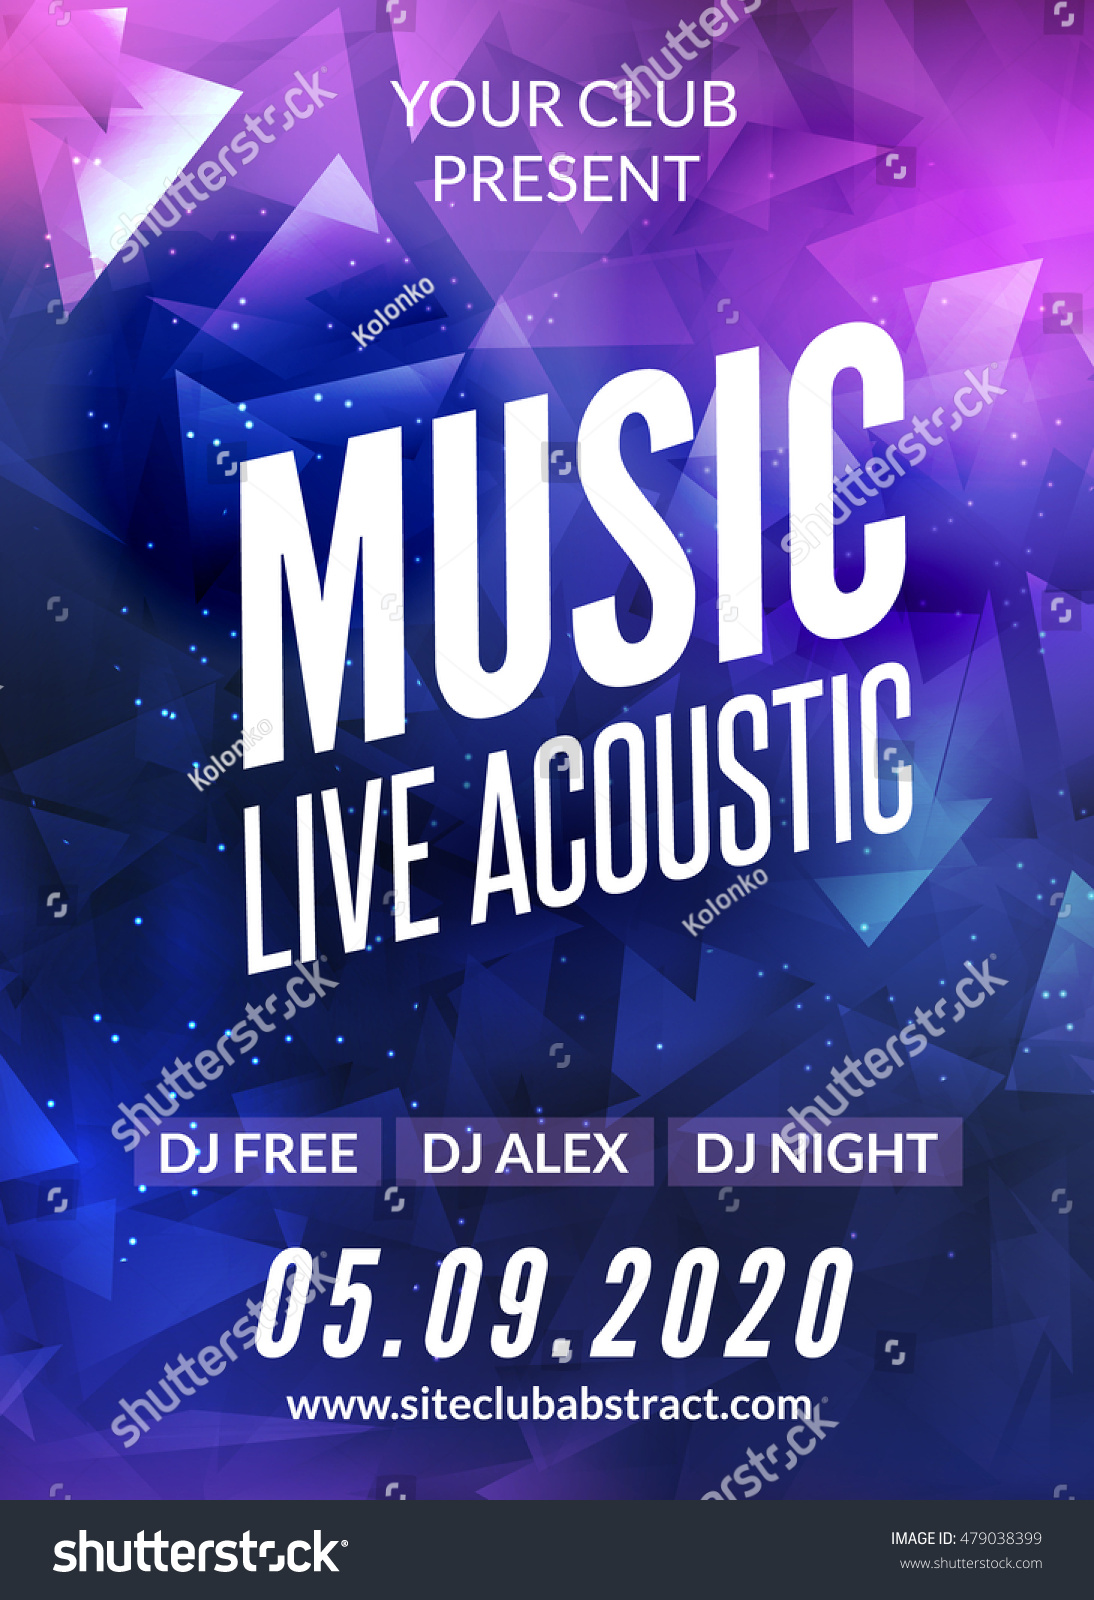 Poster design music - Live Music Acoustic Poster Design Temple Live Show Modern Party Dj Invitation Flyer